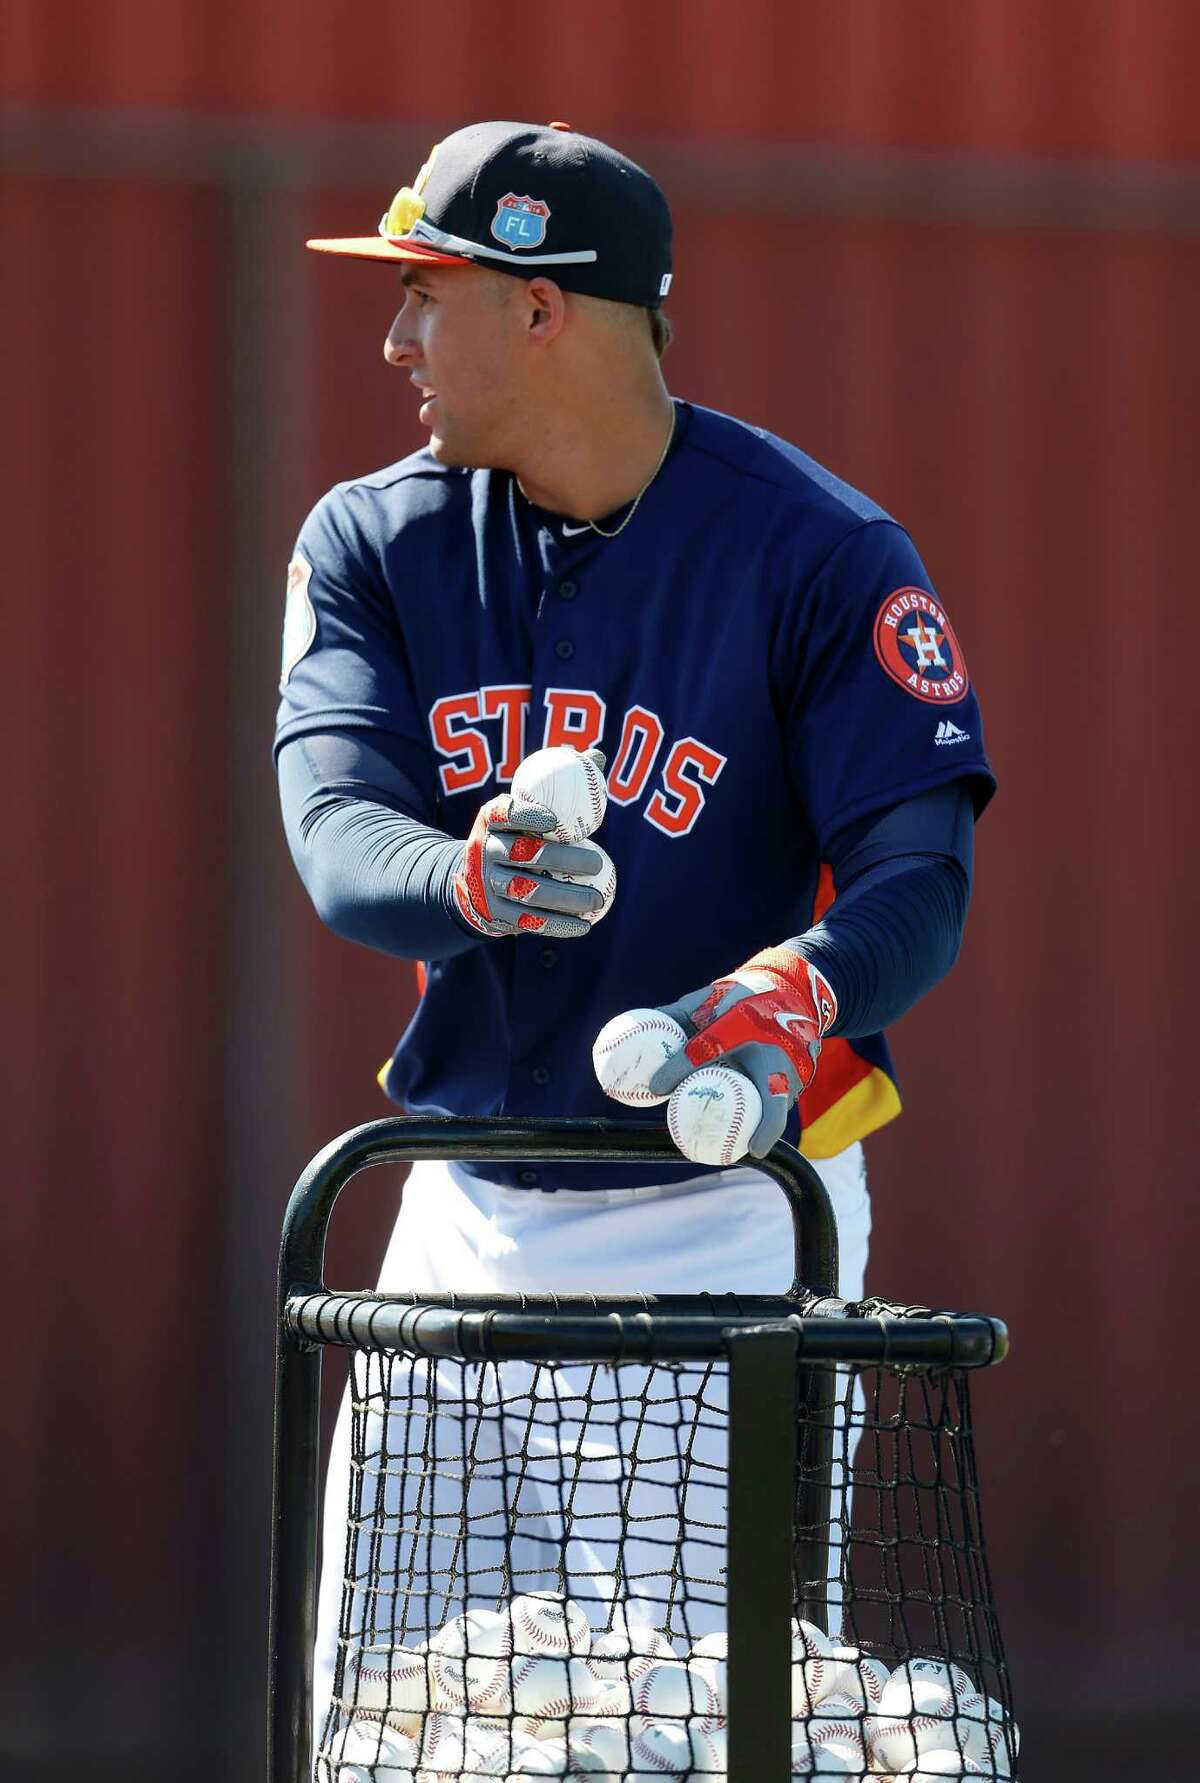 Houston Astros outfielder George Springer picks up balls during batting practice at the Astros spring training in Kissimmee, Florida, Thursday, Feb. 25, 2016.